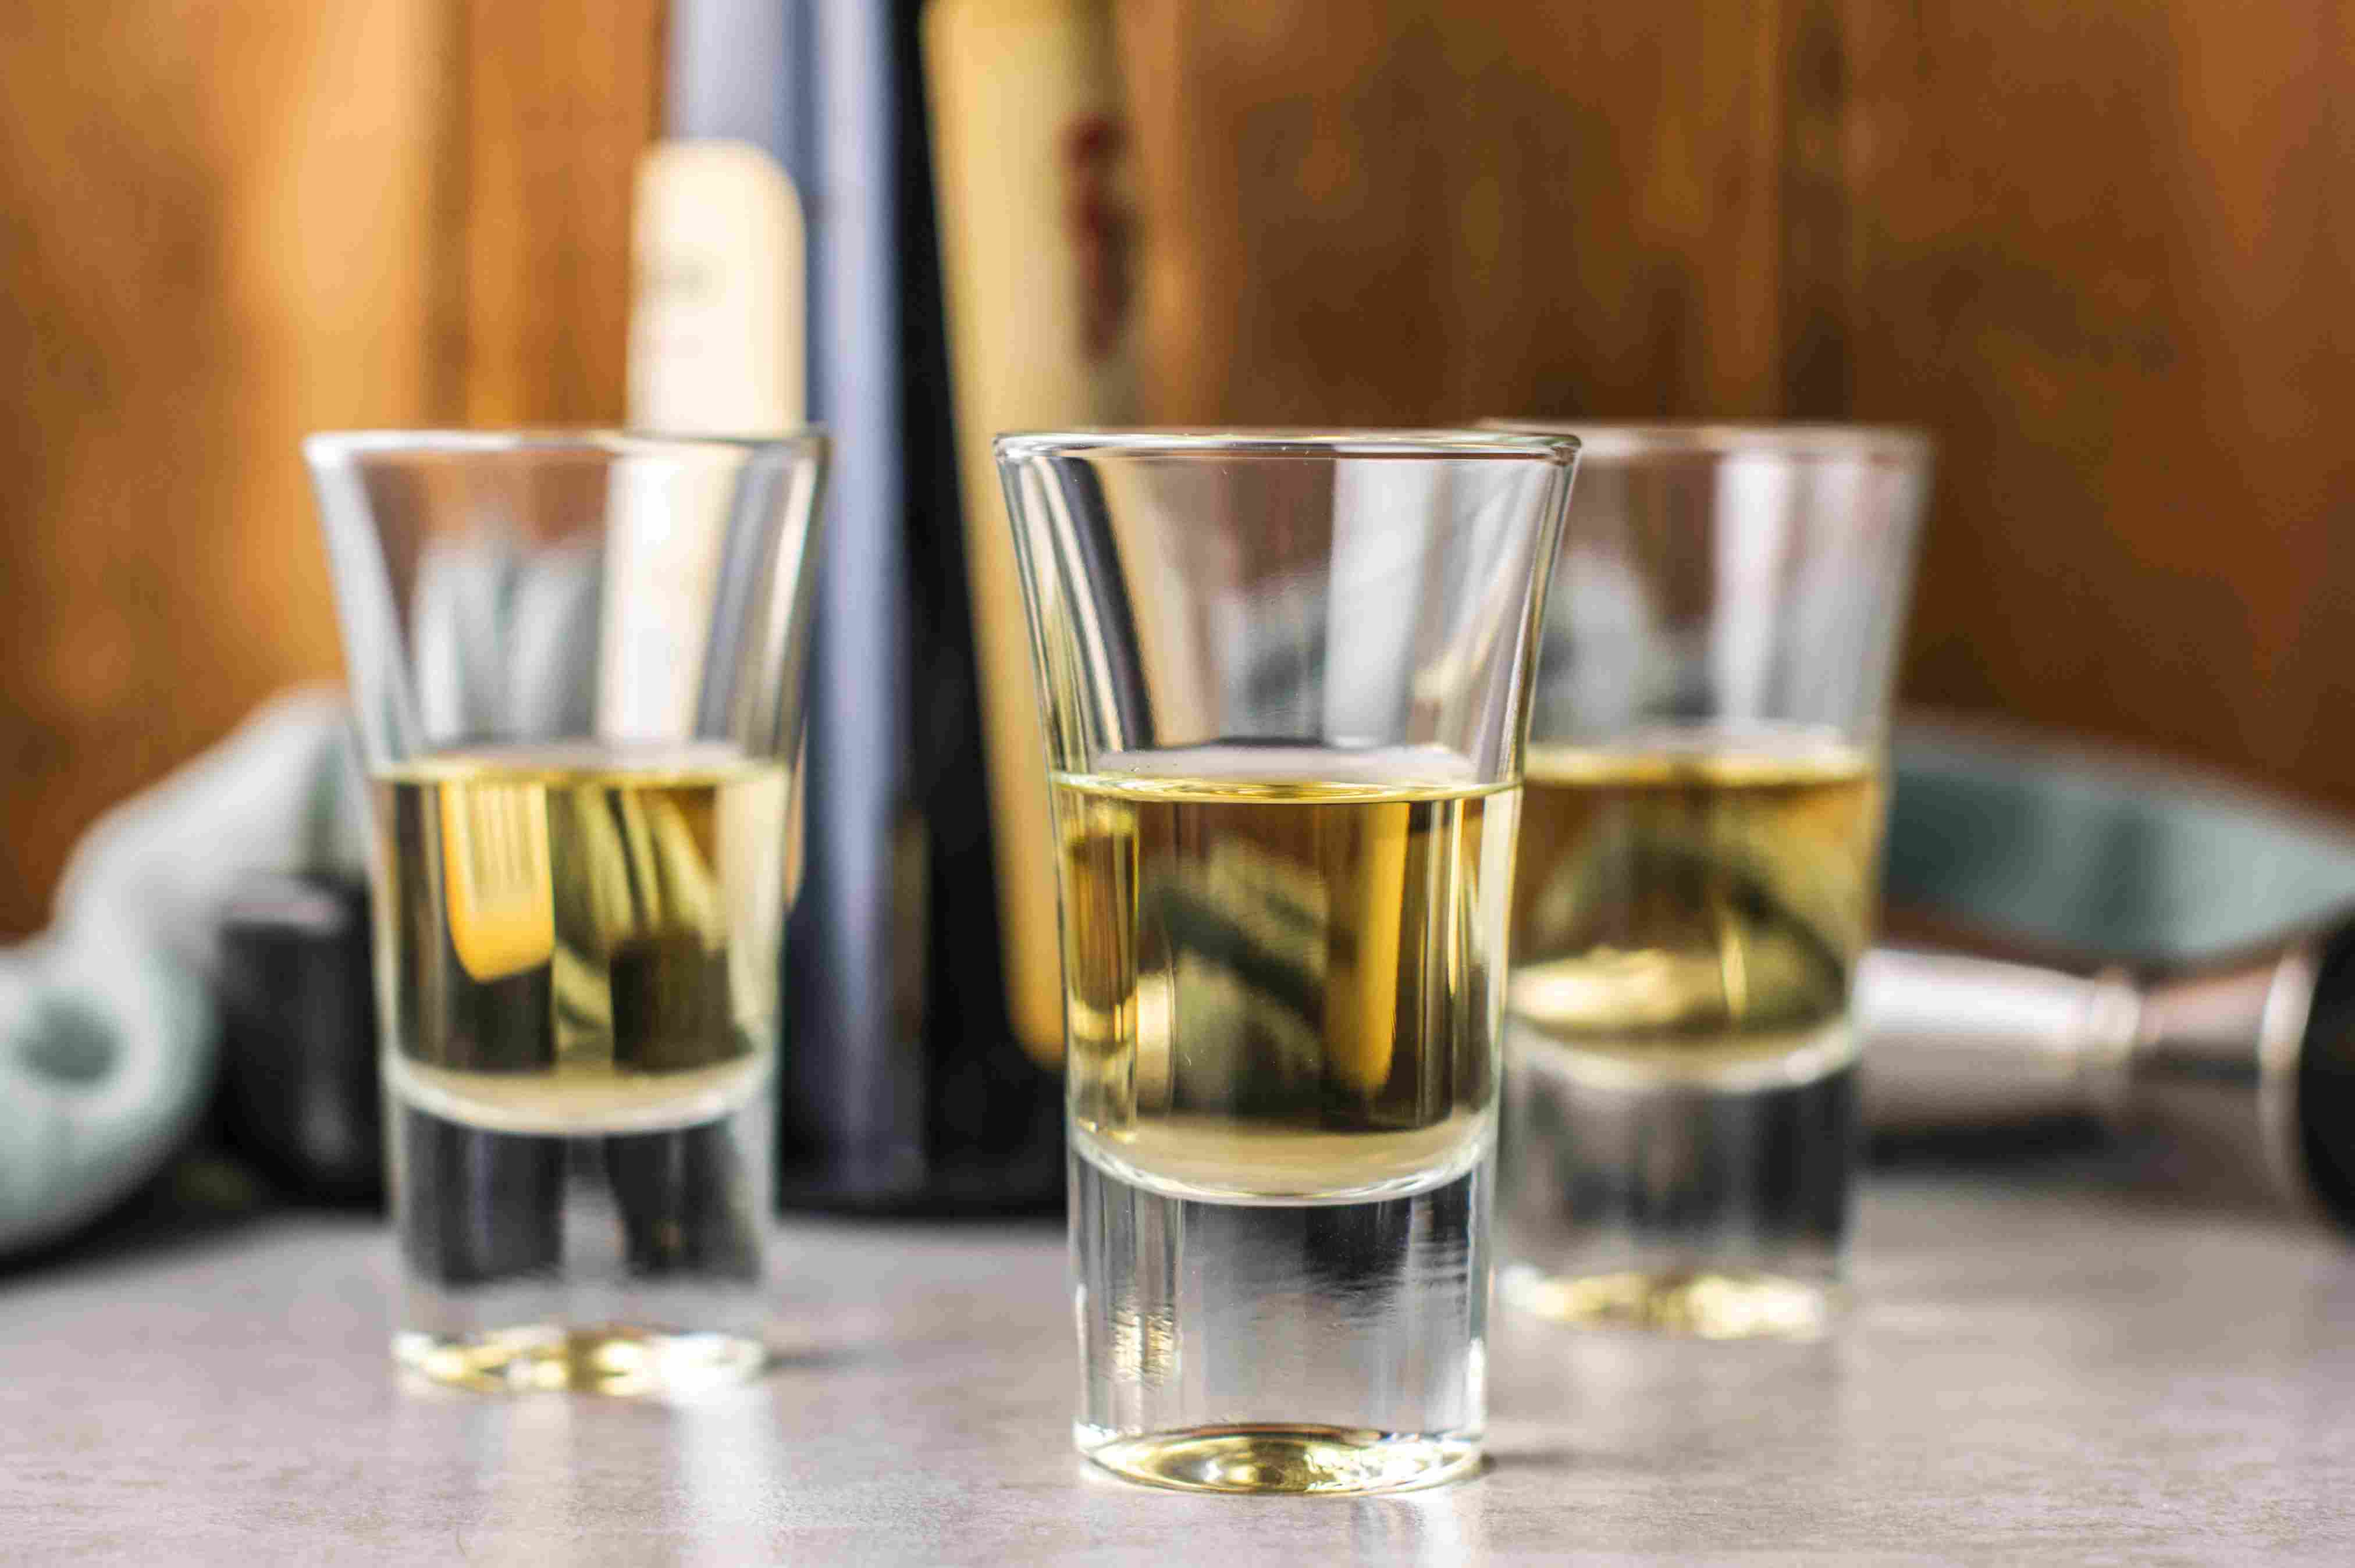 Pour the Frangelico into a shot glass